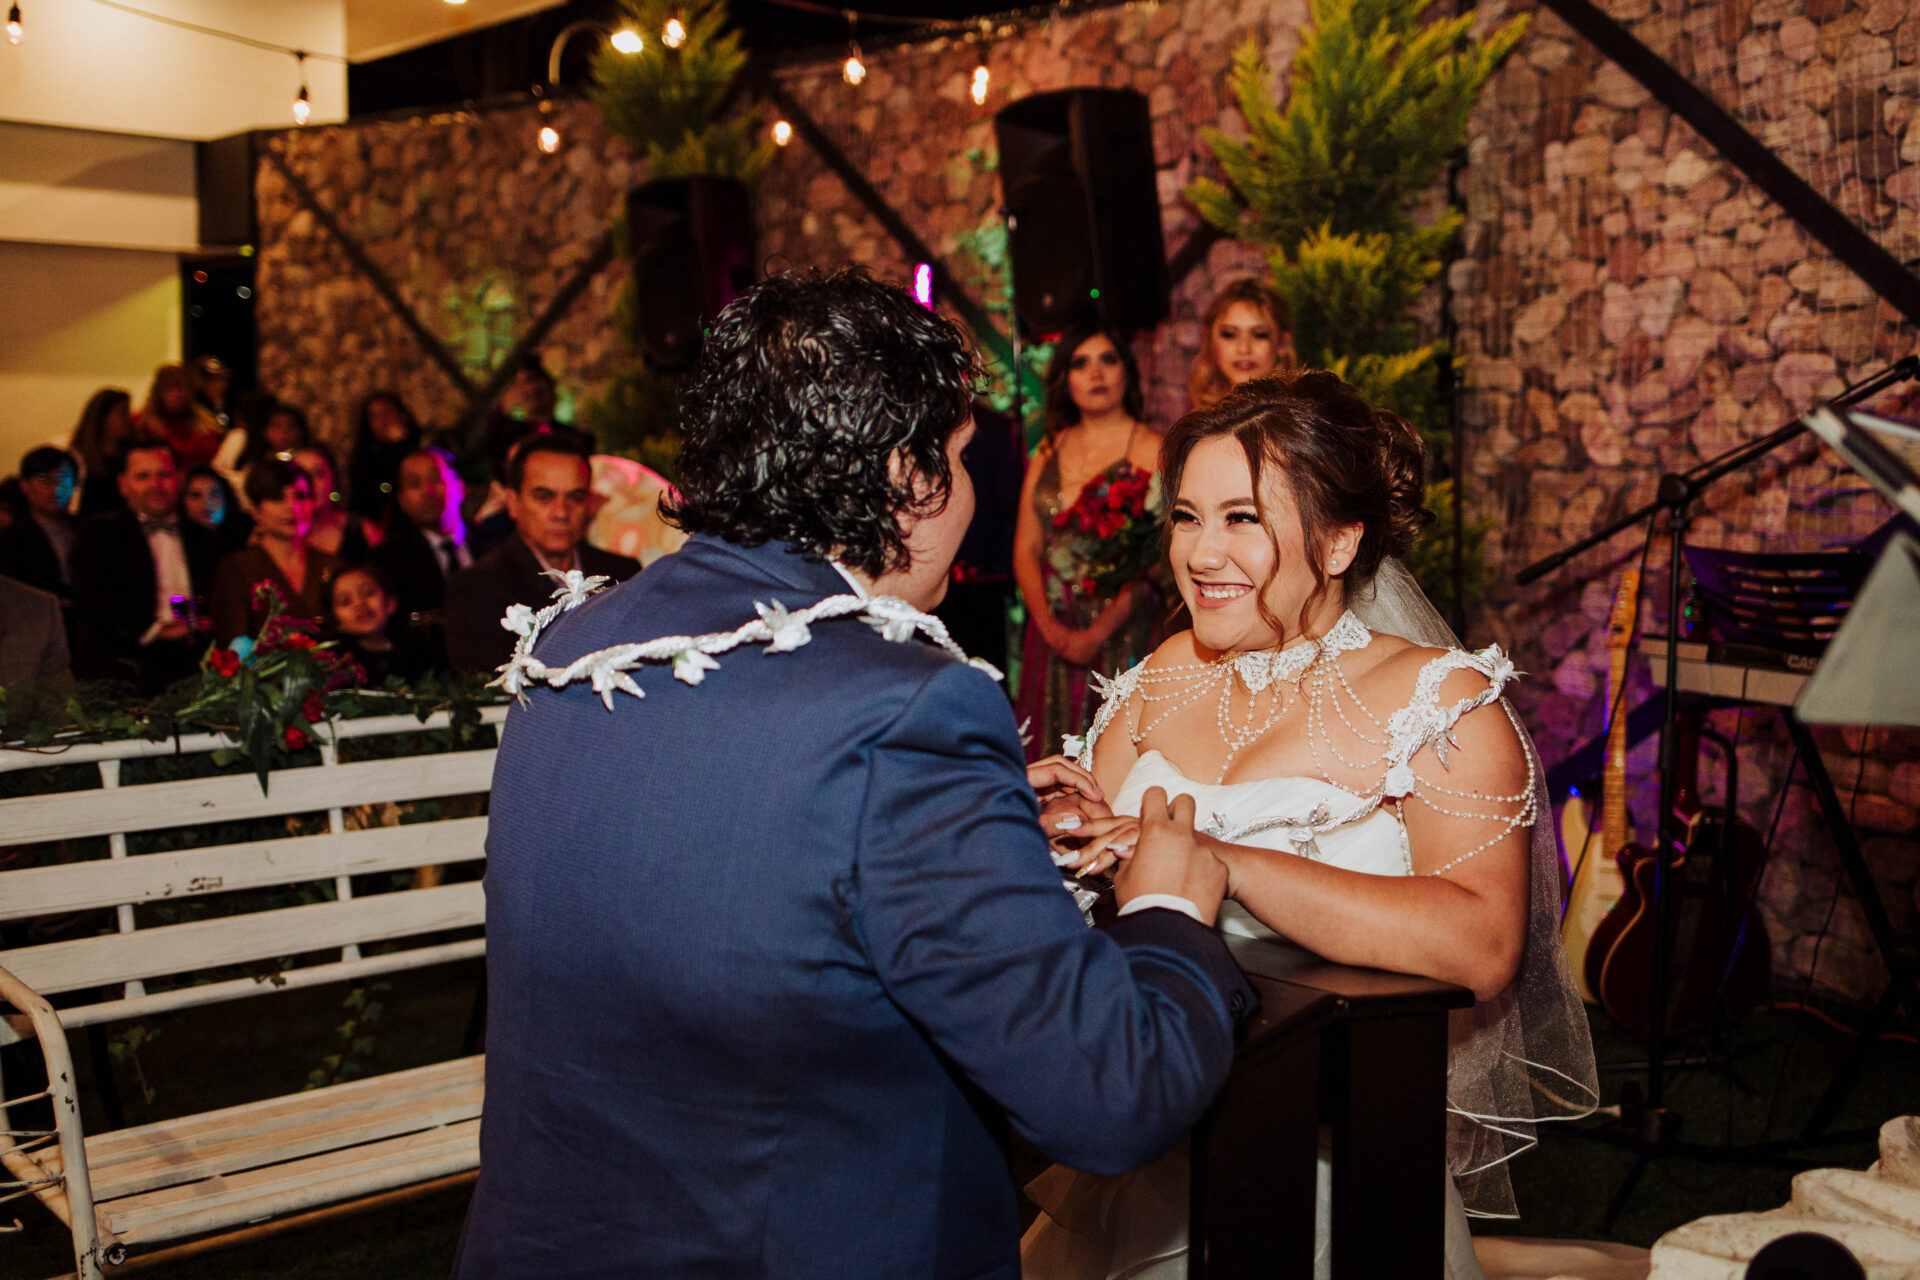 javier_noriega_fotografo_bodas_gaviones_zacatecas_wedding_photographer28